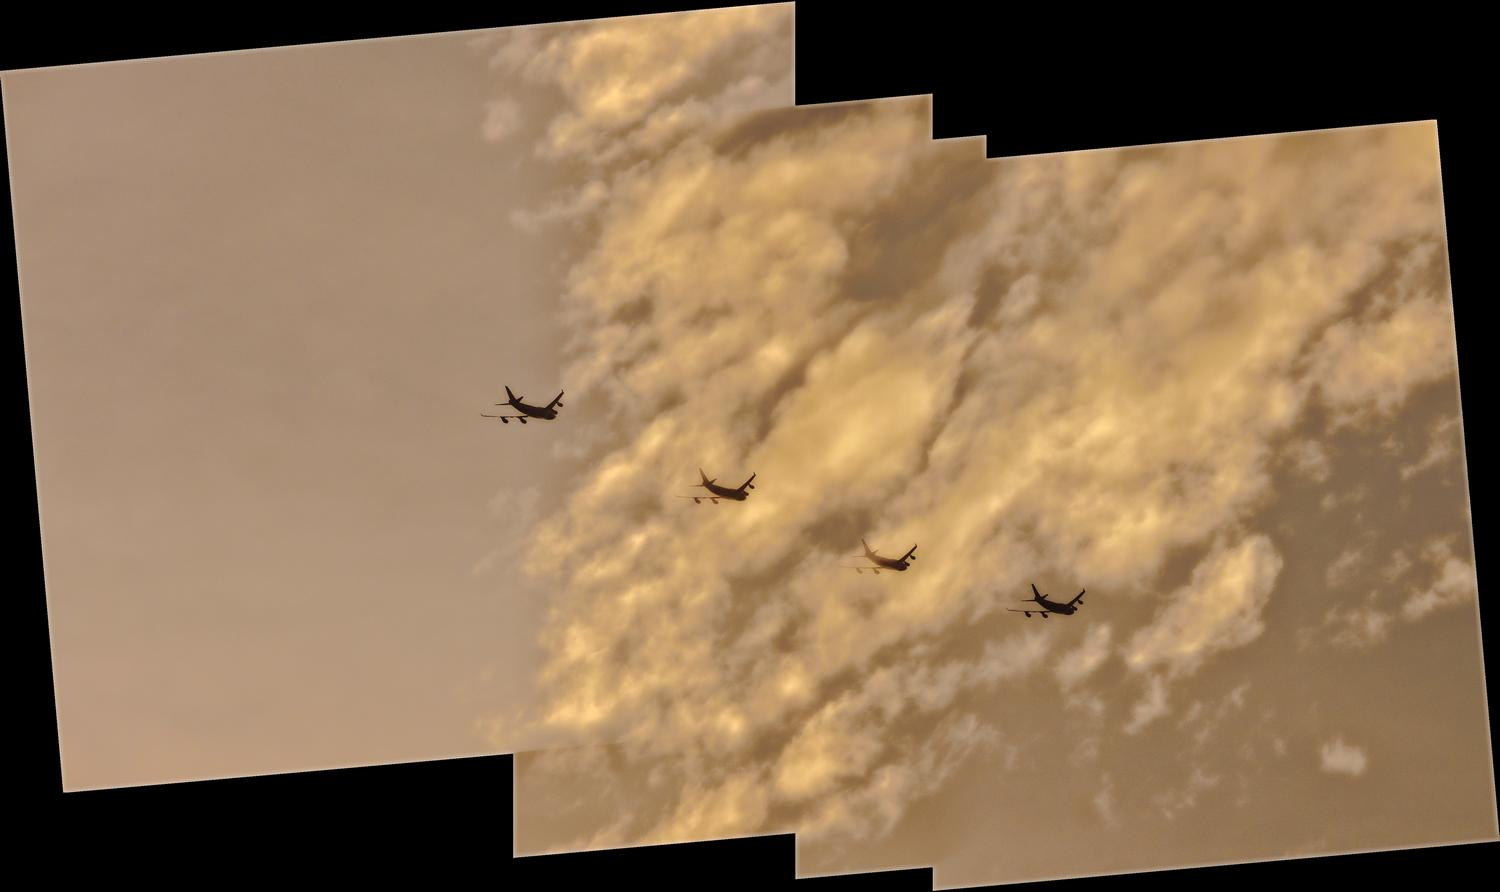 Planes in a line against the clouds - Sky caravan - Panasonic DMC-FZ18 - Tony Karp, design, art, photography, techno-impressionist, techno-impressionism, aerial photography , drone , drones , dji , mavic pro , video , 3D printing - Books -